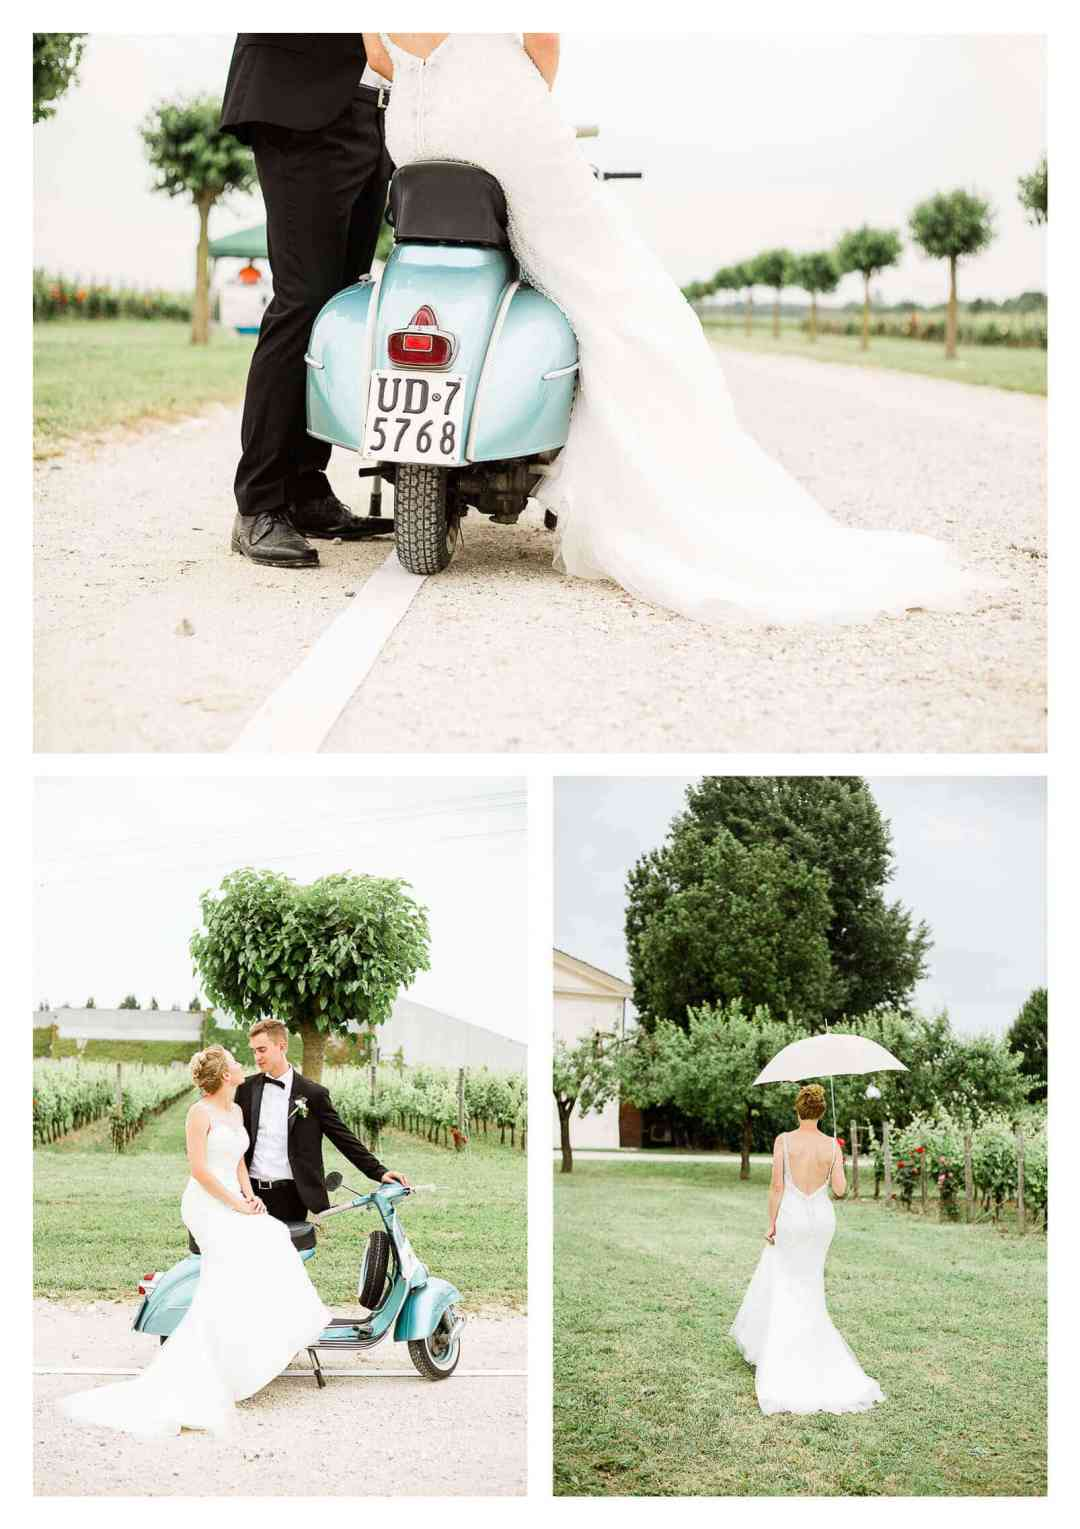 Wedding couple and moped in Italy at vineyard | Fossa Mala wedding photogarpher